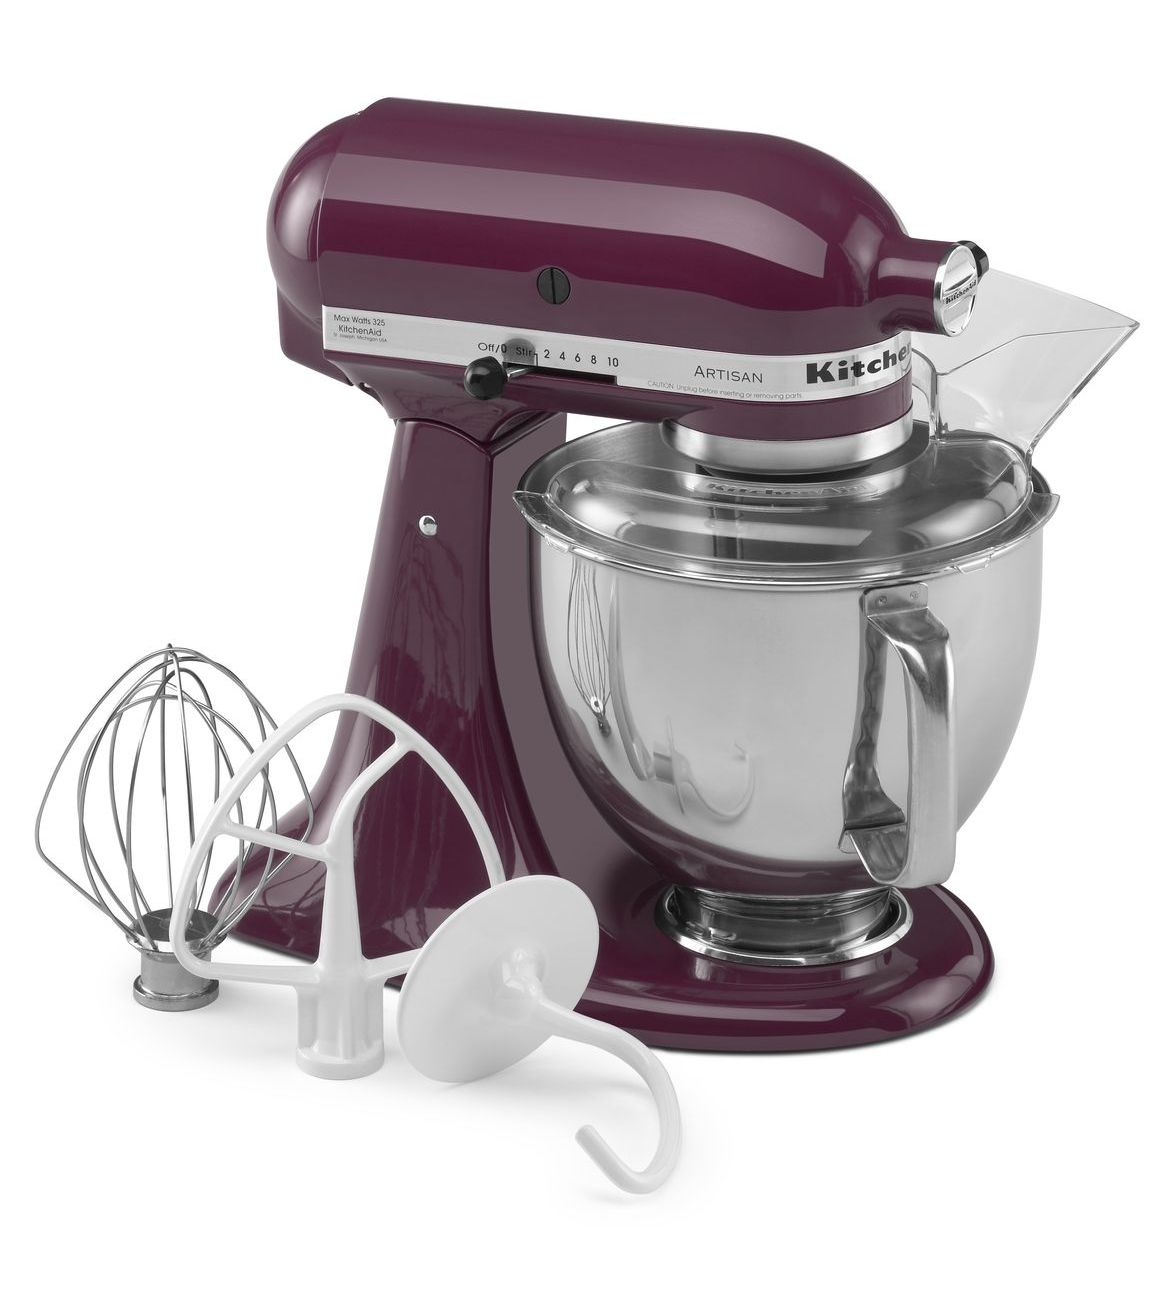 KitchenAid Artisan® Series 5-Quart Tilt-Head Stand Mixer Ultra violet Pantone / SWAGGER Magazine